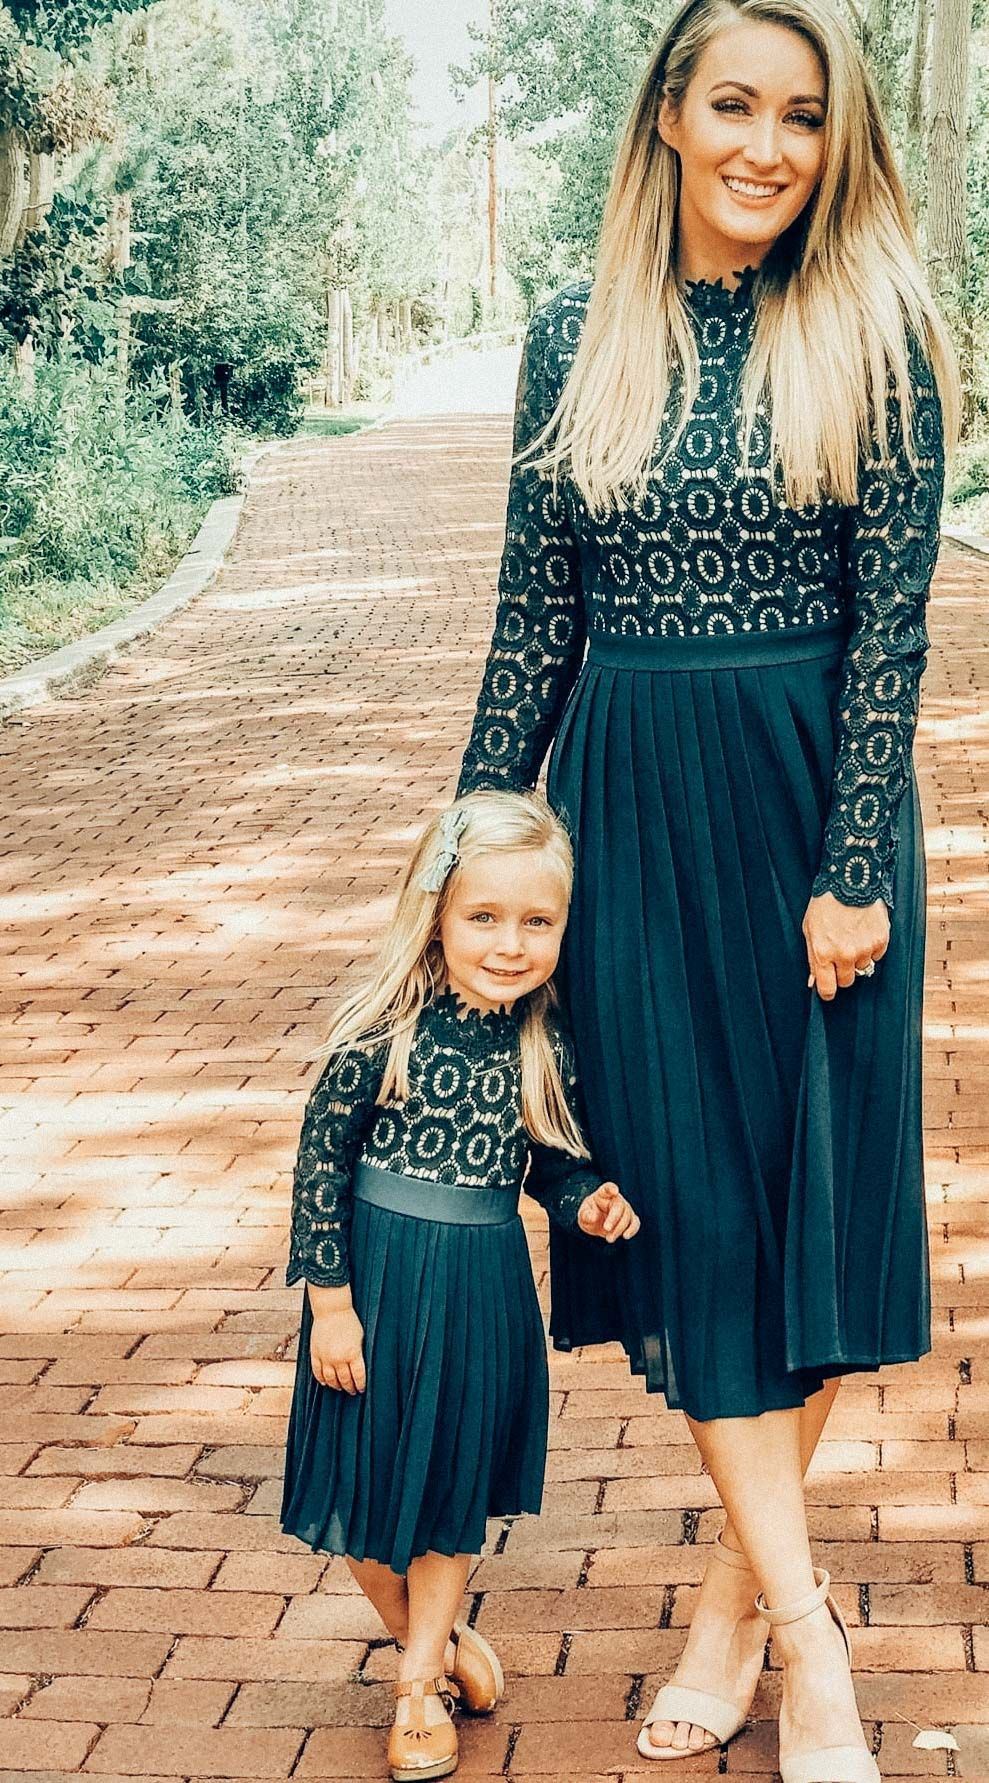 d4f58fbf7e4 Mommy and me matching modest dresses! ivycityco.com